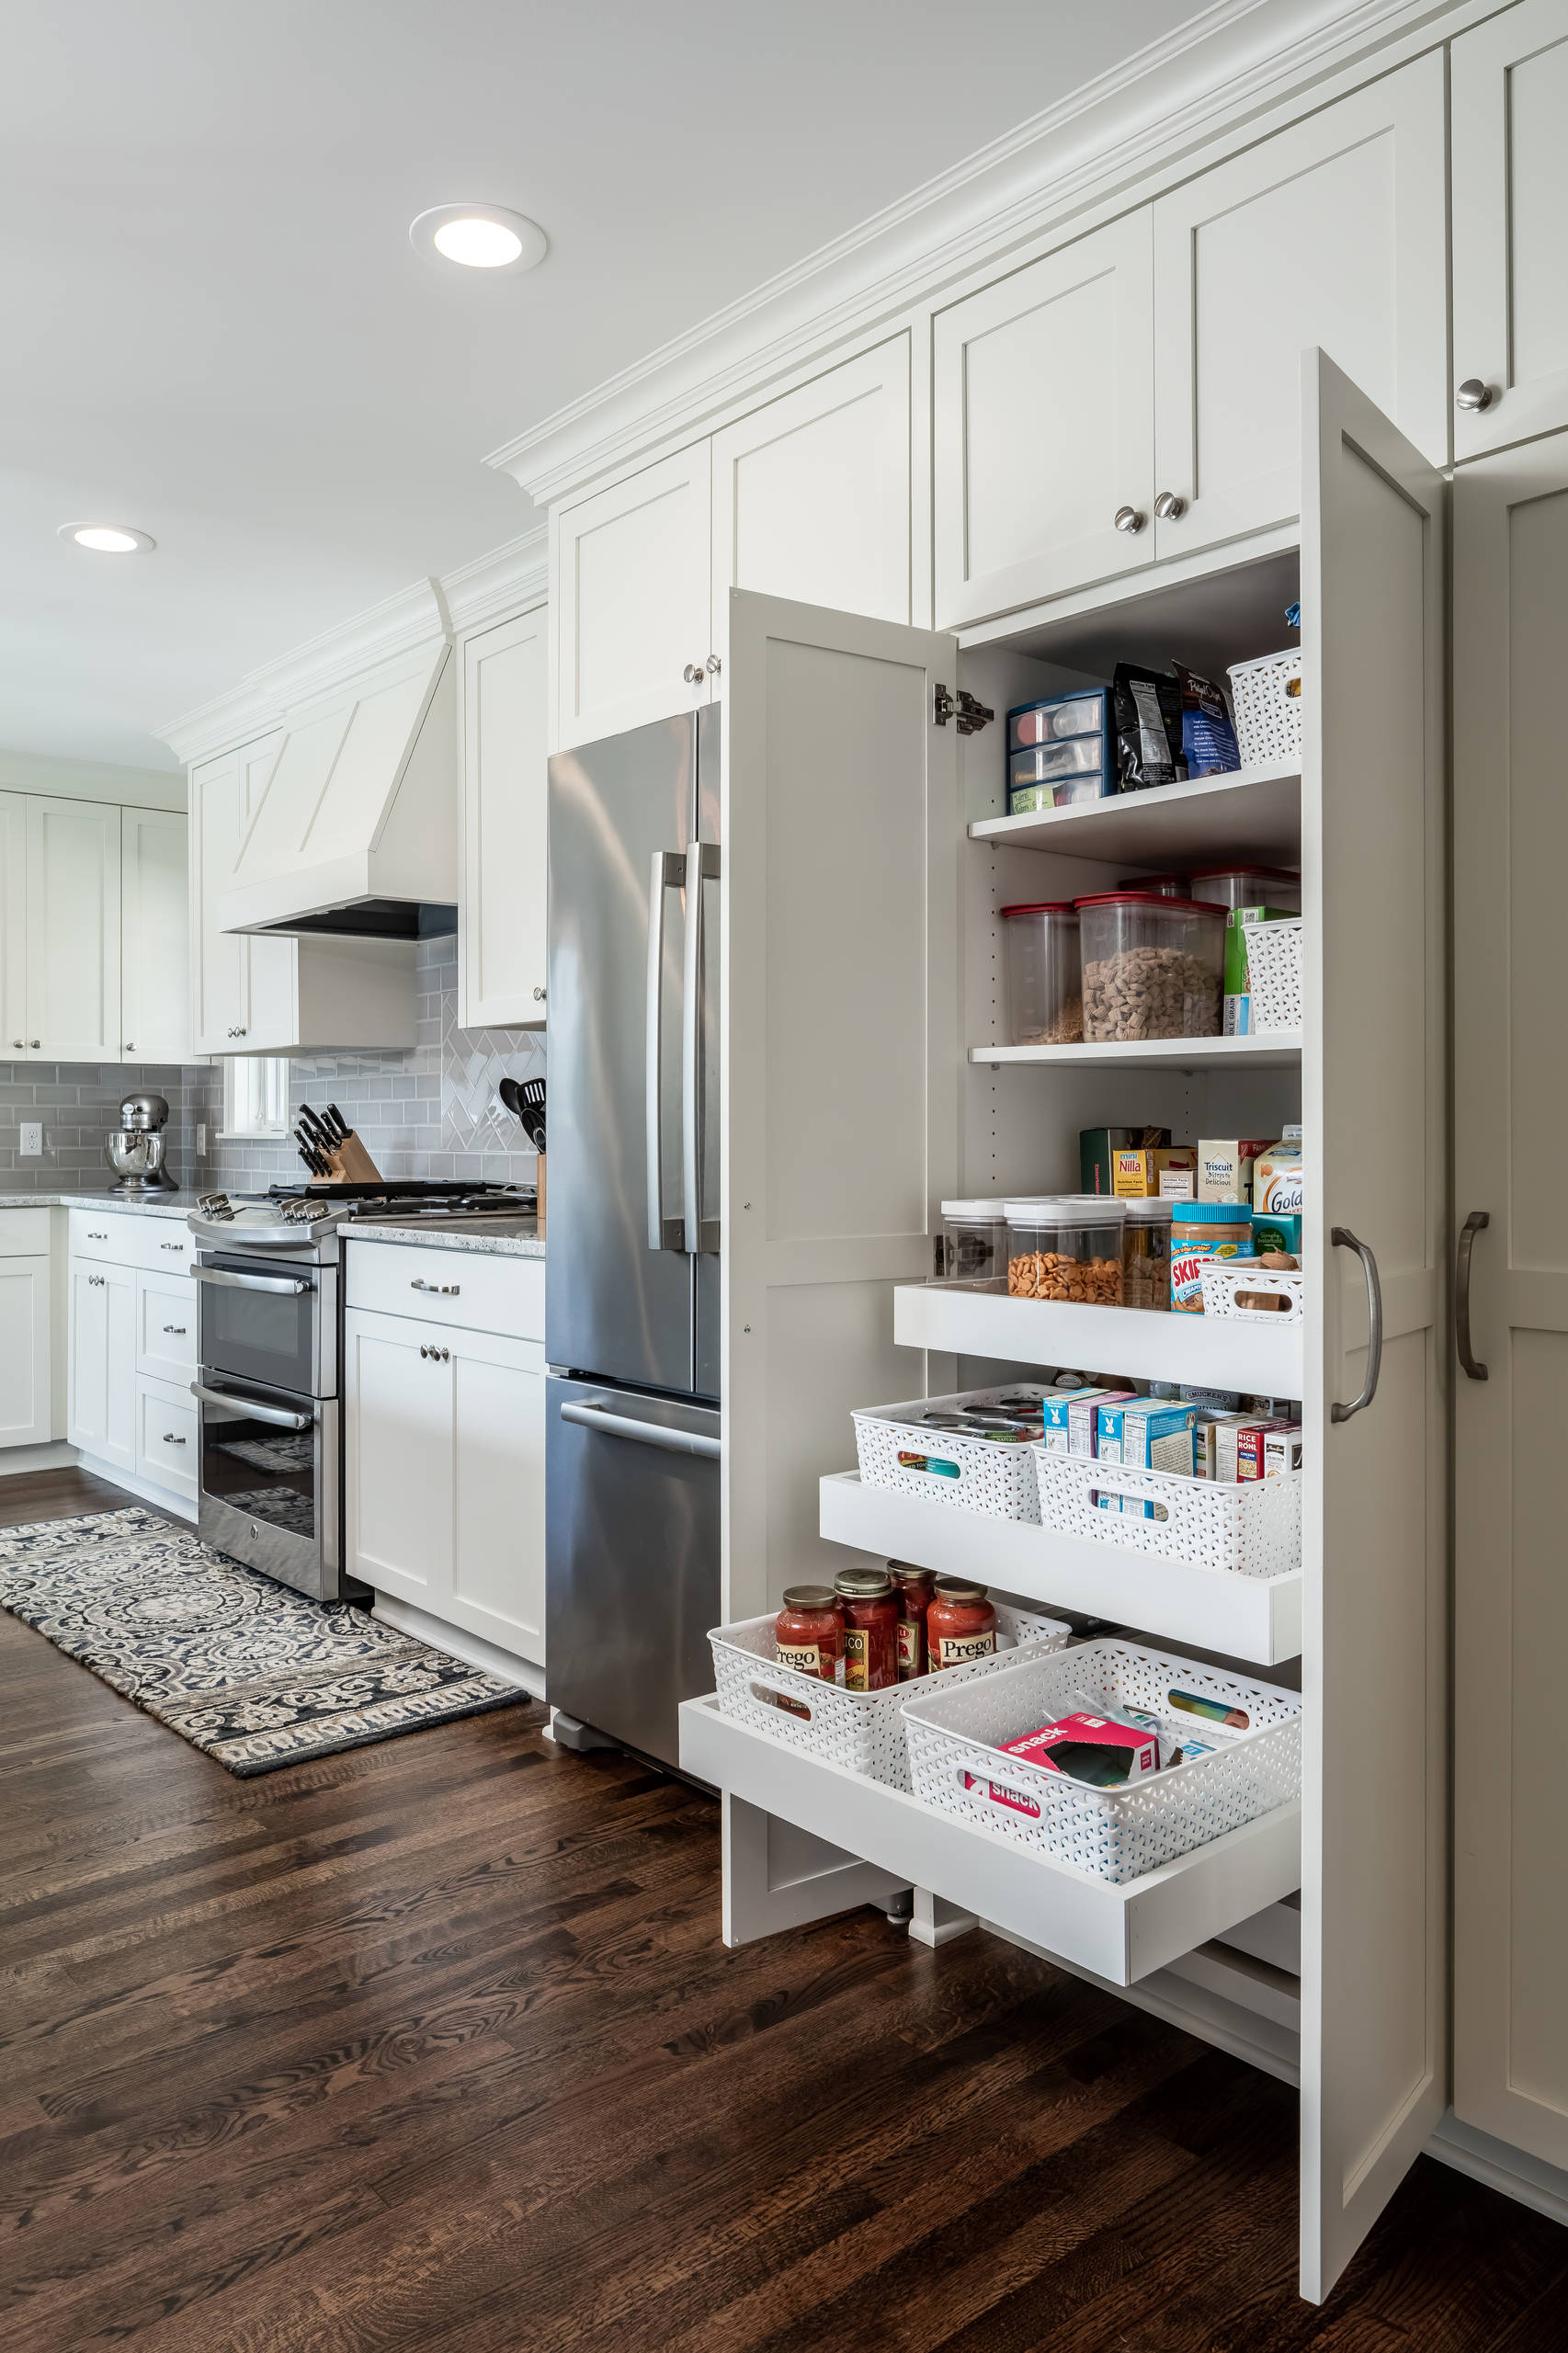 75 Beautiful Kitchen Pantry Pictures Ideas April 2021 Houzz